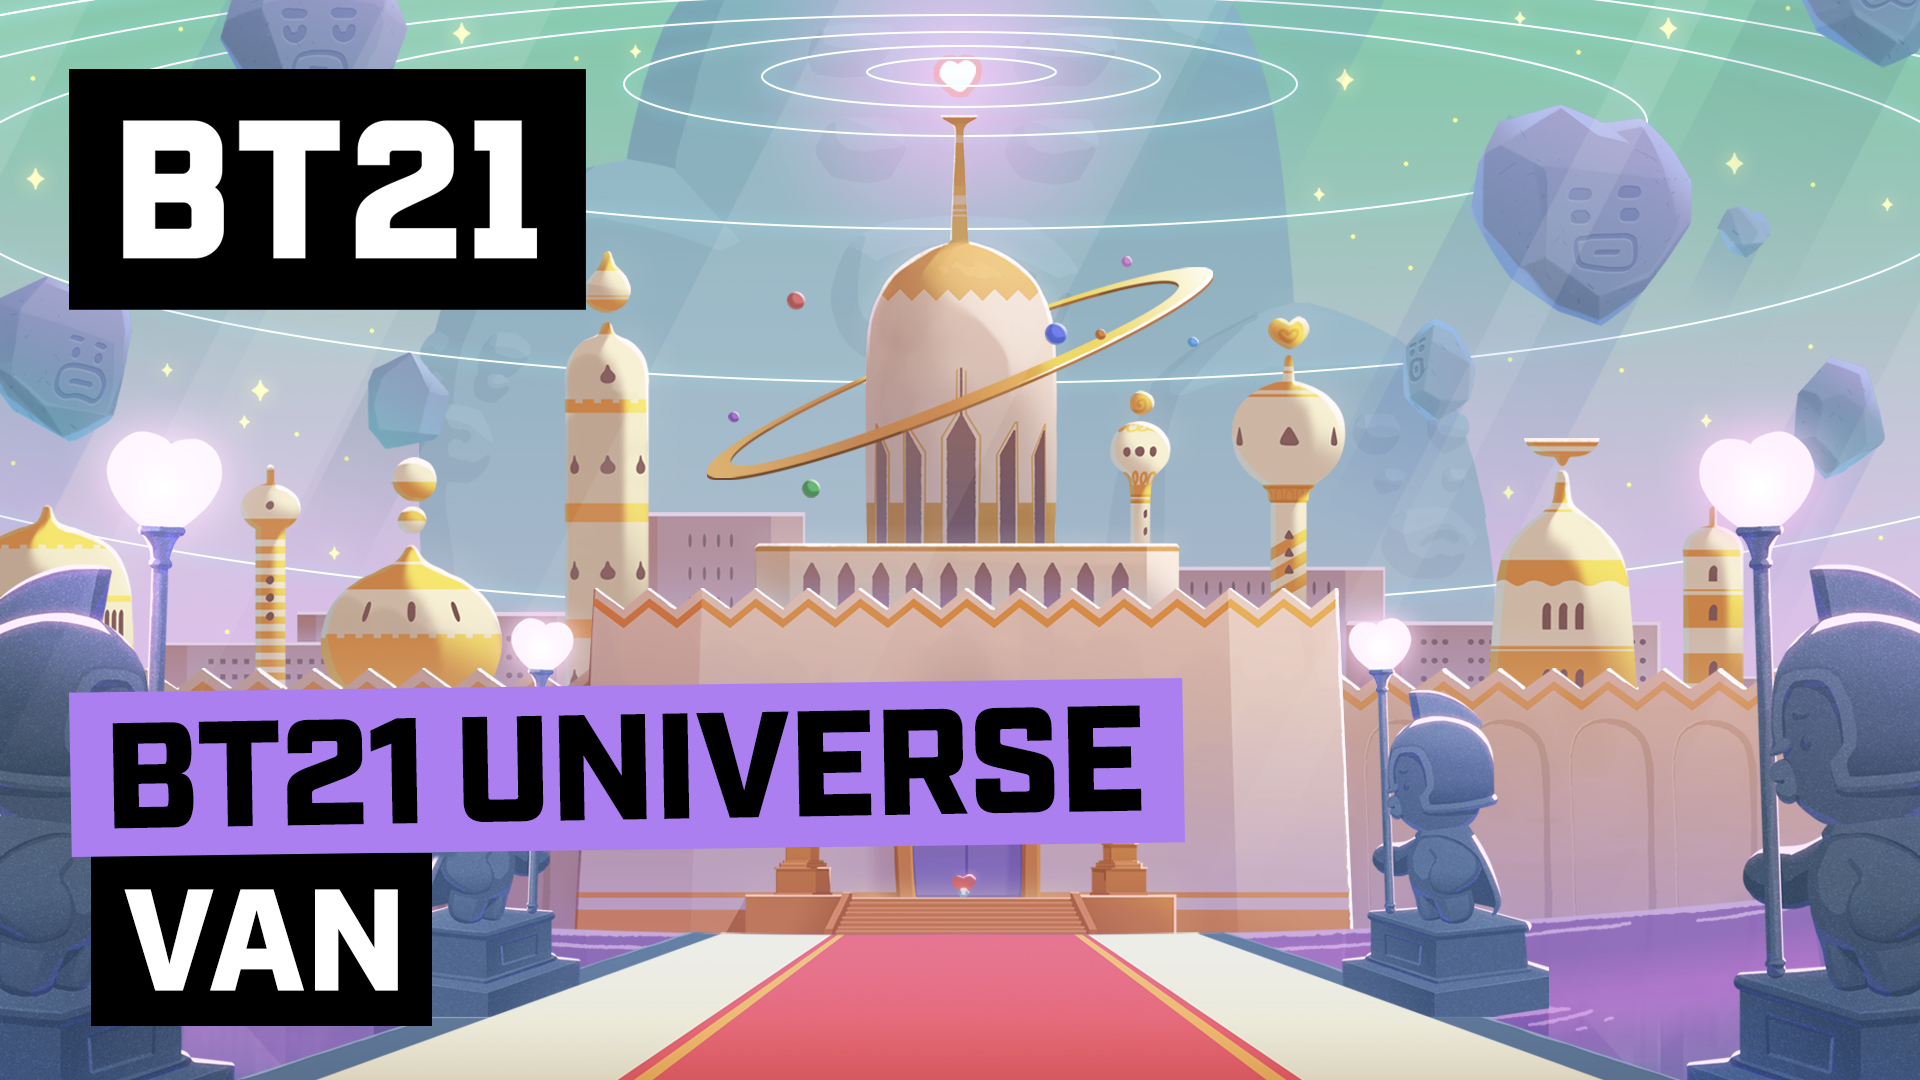 [BT21] BT21 UNIVERSE ANIMATION EP.01 - VAN